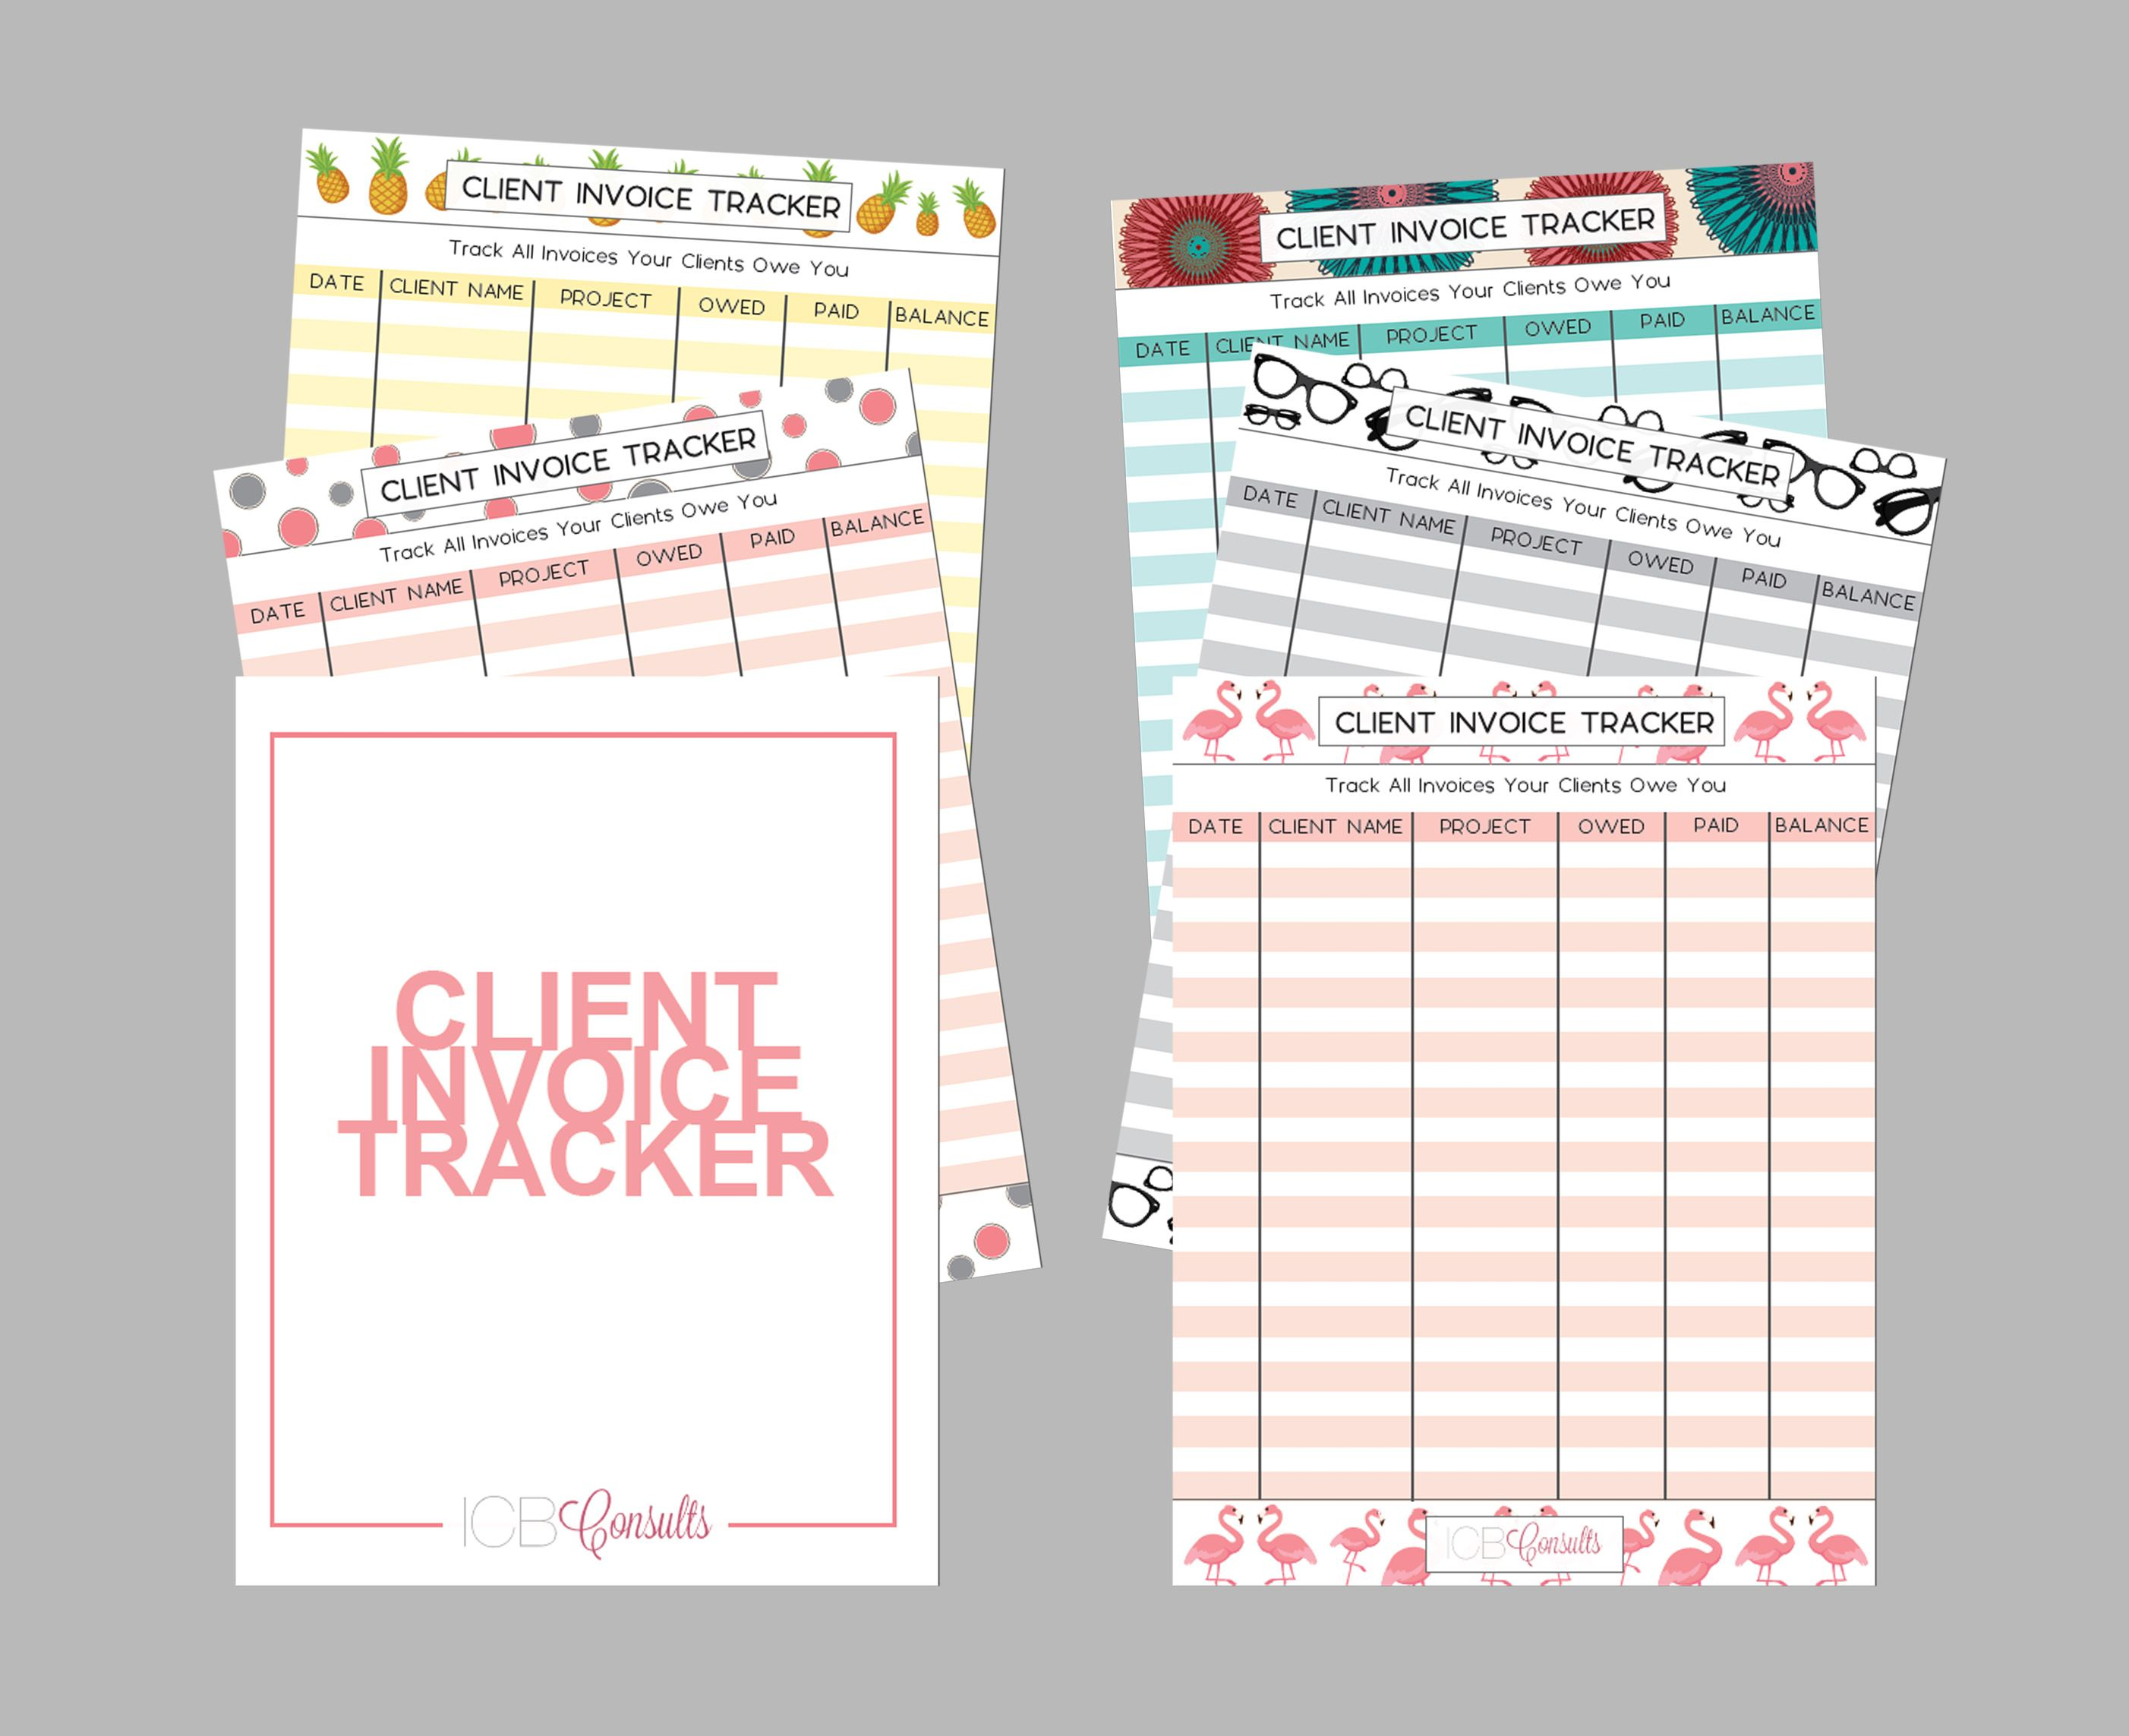 Client Invoice Tracker Focuses On Helping You Maintain